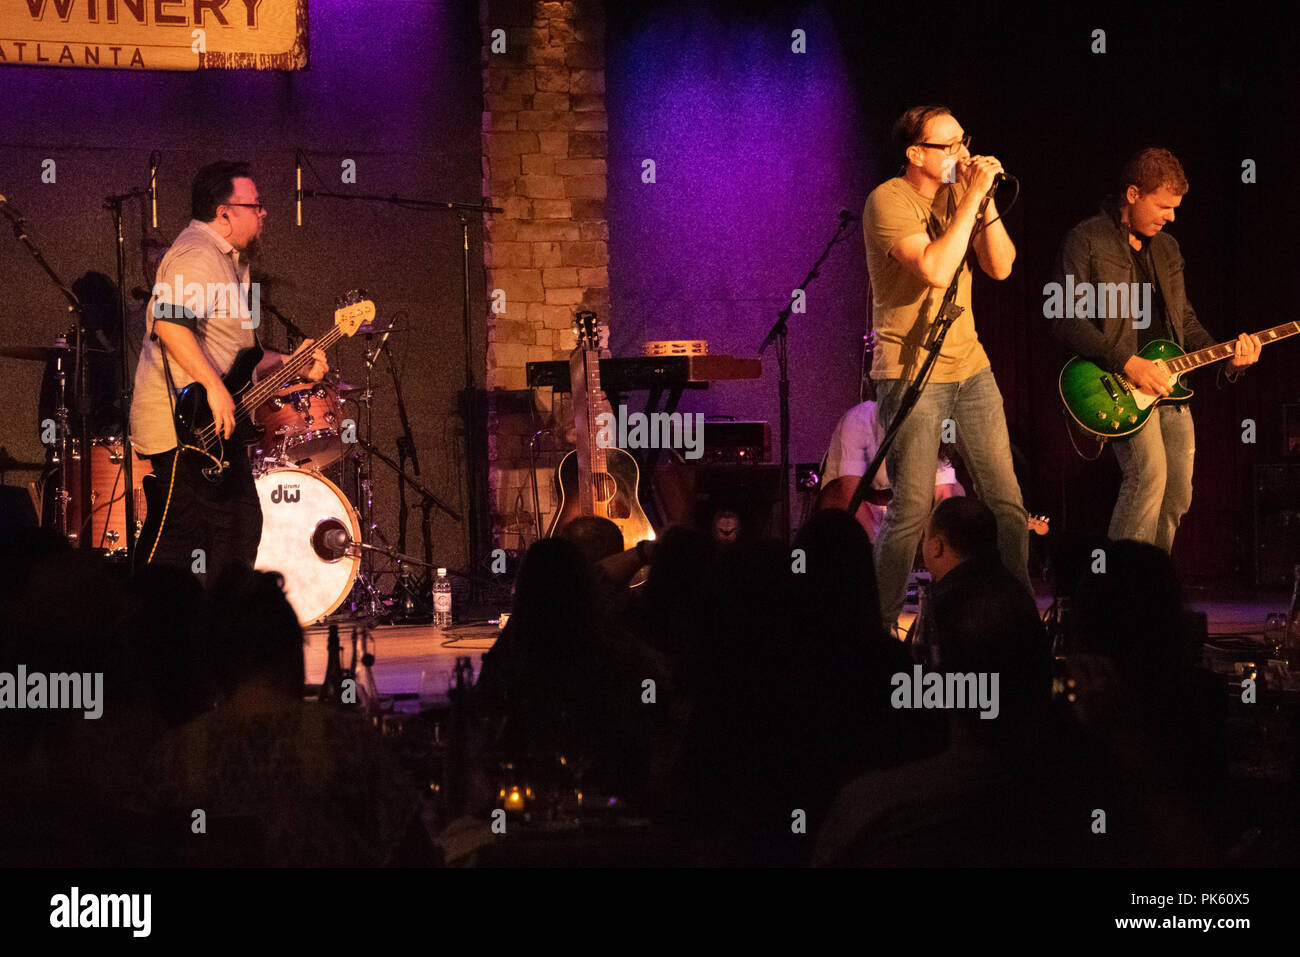 Smalltown Poets in concert at the City Winery in Atlanta, Georgia. (USA) - Stock Image